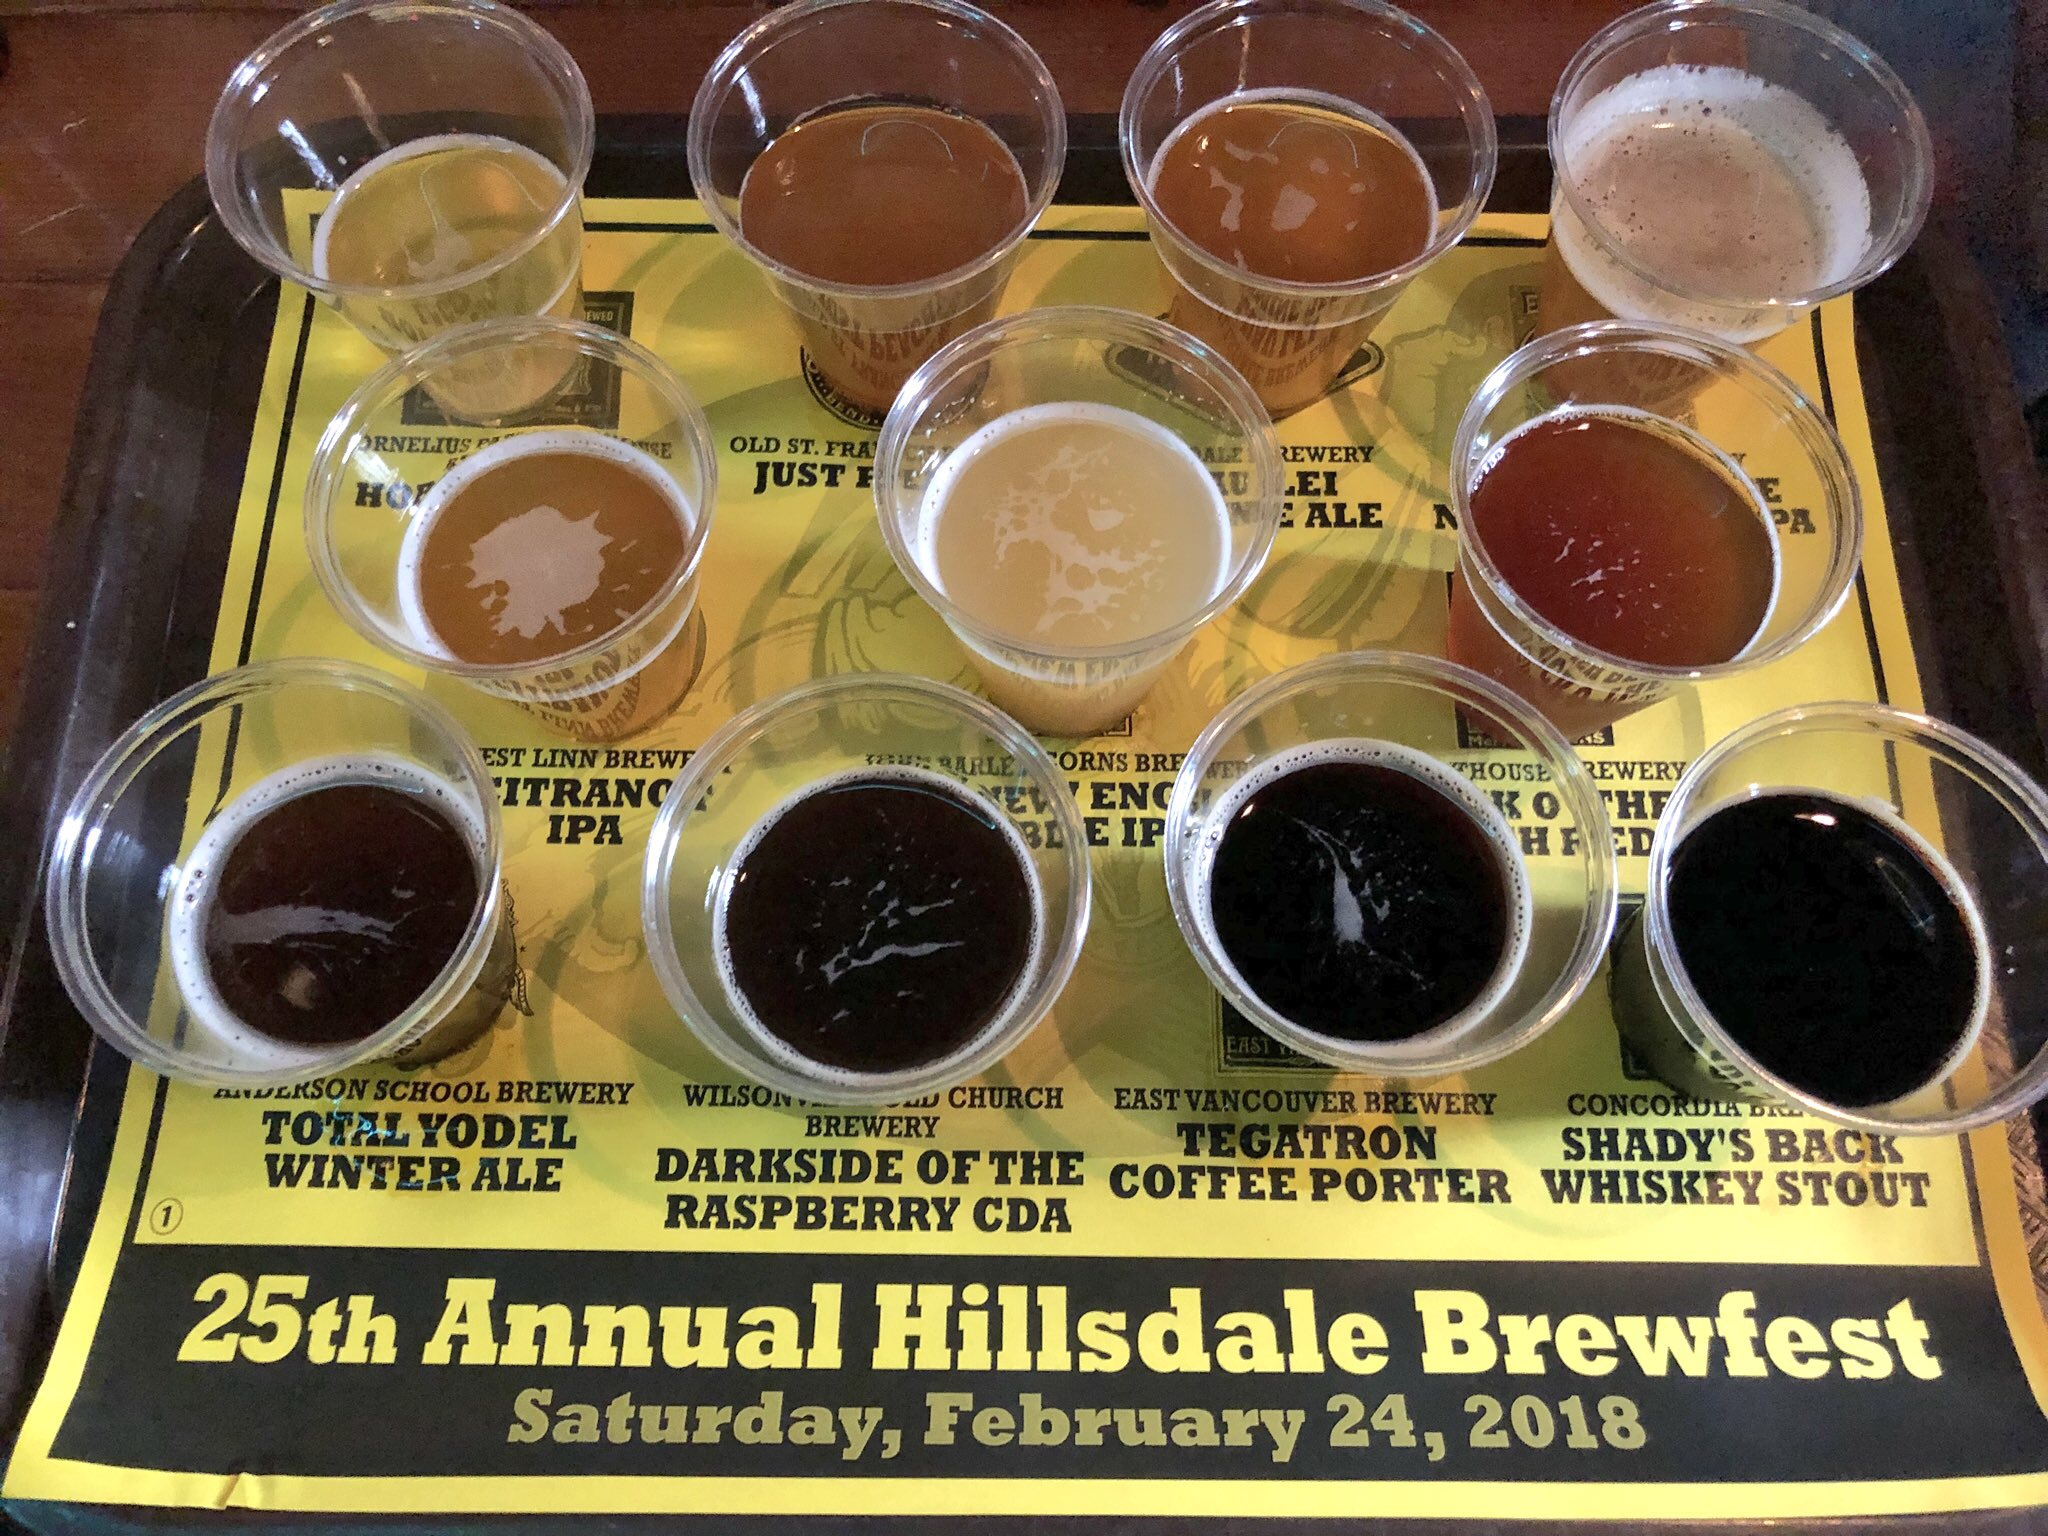 A look at the Yellow Taster Tray of beers at the 2018 McMenamins Hillsdale Brew Fest.